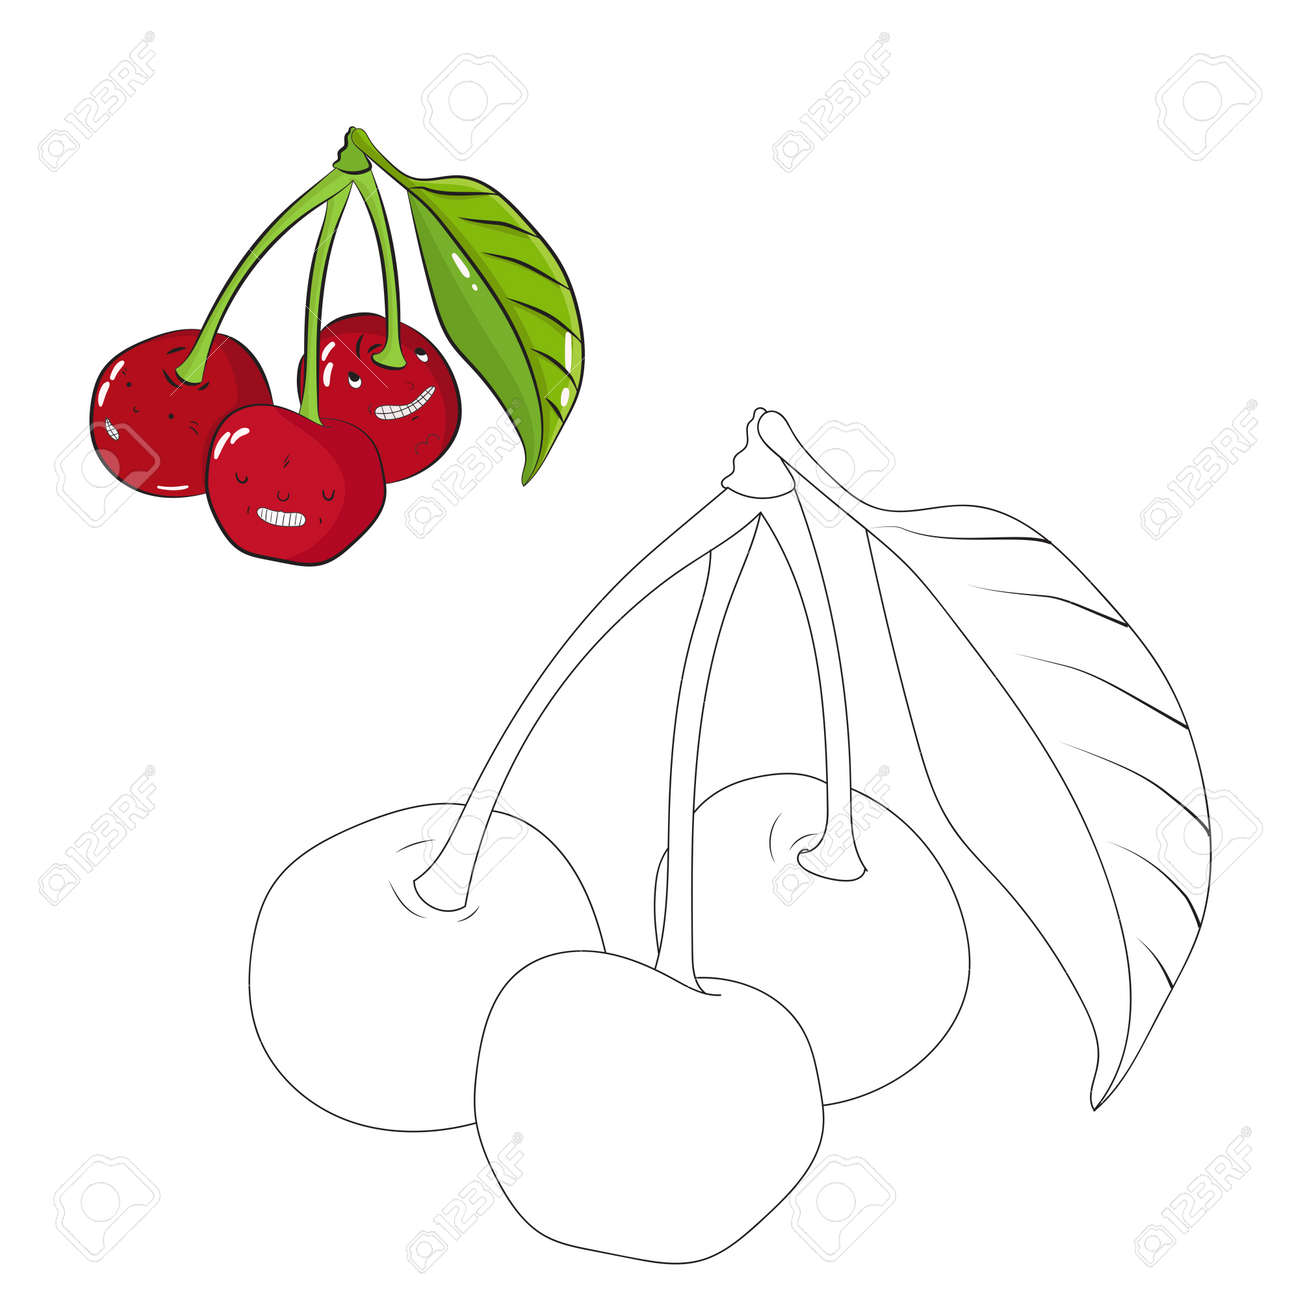 Educational Game Coloring Book Cherry Fruit Cartoon Doodle Hand Drawn Vector Illustration Stock